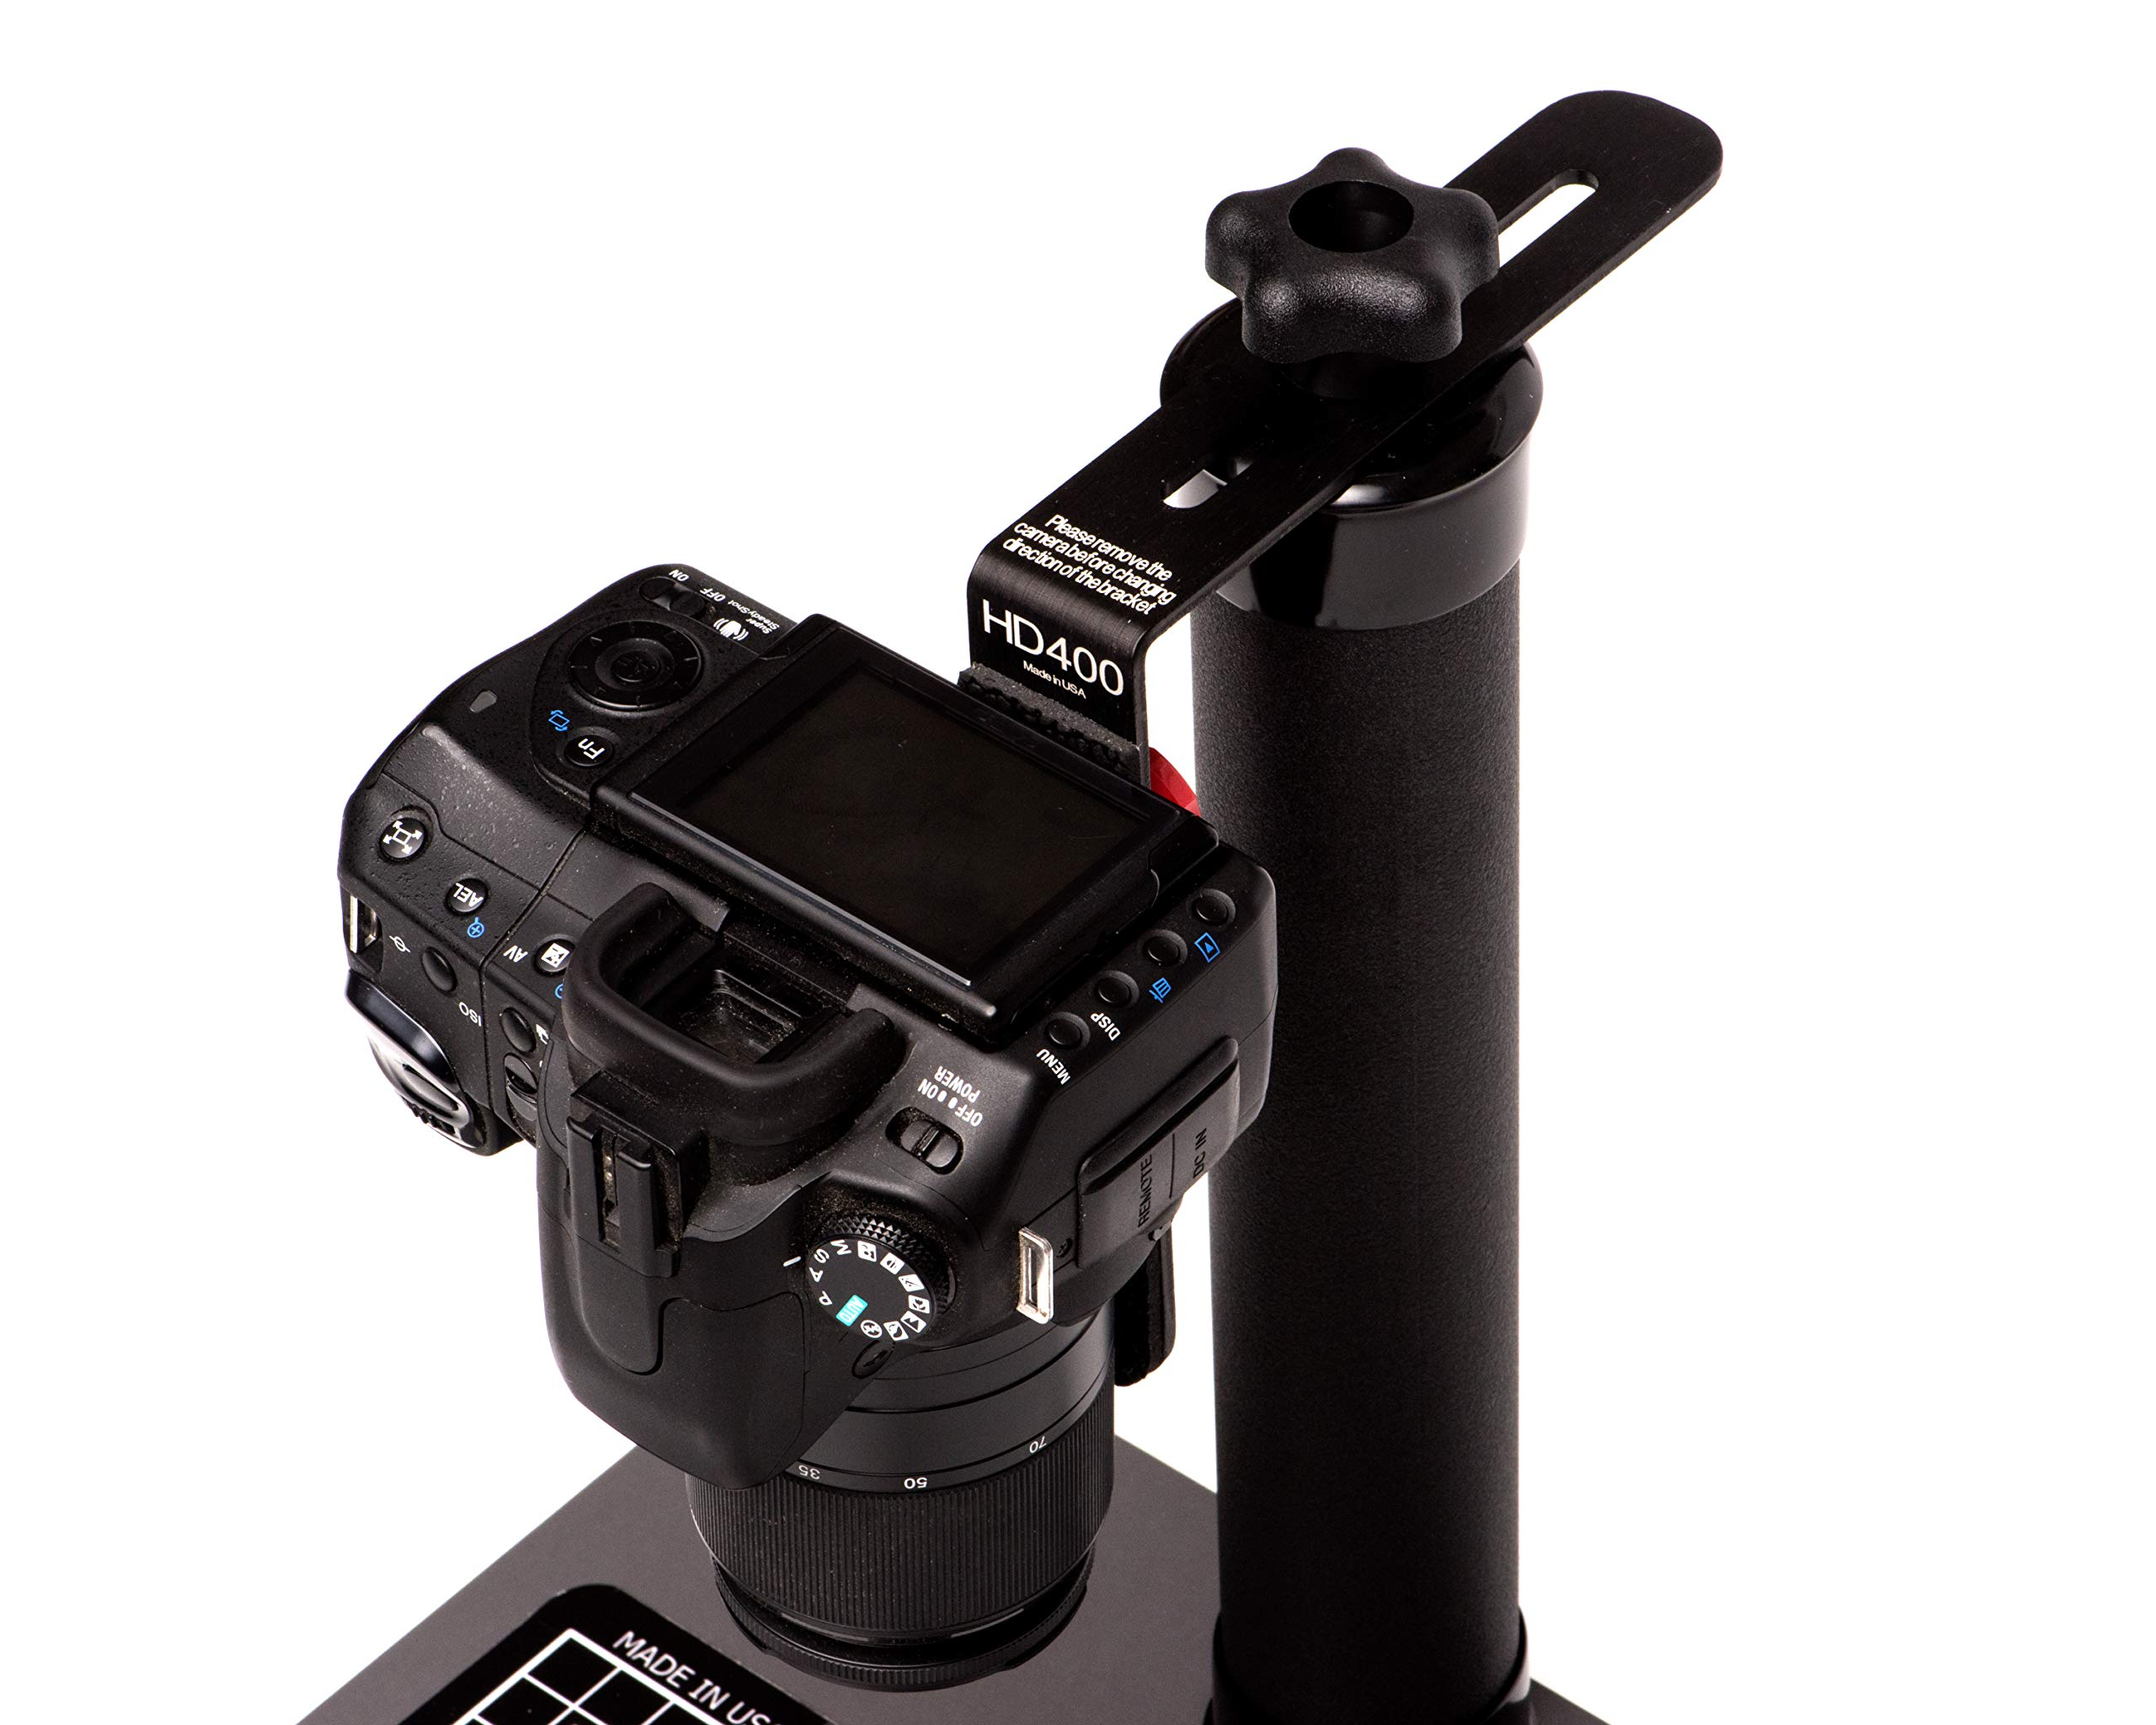 COPY STAND # HD400, A Compact & Small Tool for Digitizing Documents, Photos, or Small Objects with Today's SLR Super Megapixel Cameras by Stand Company (Image #5)